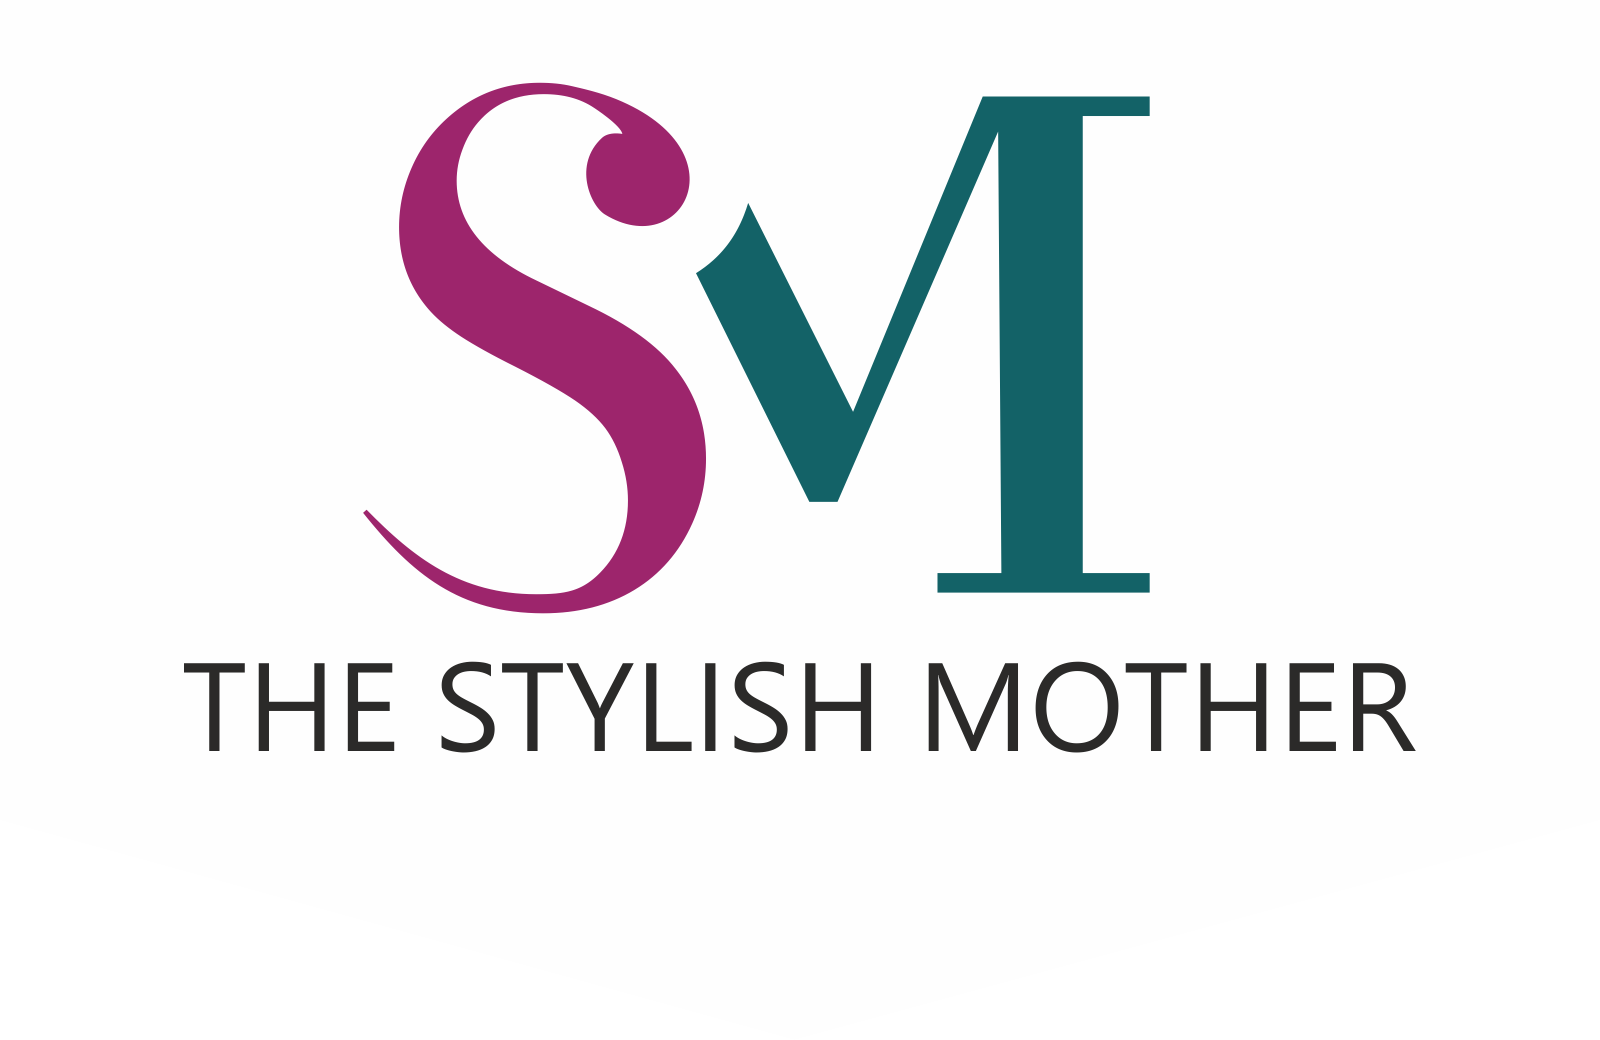 The Stylish Mother